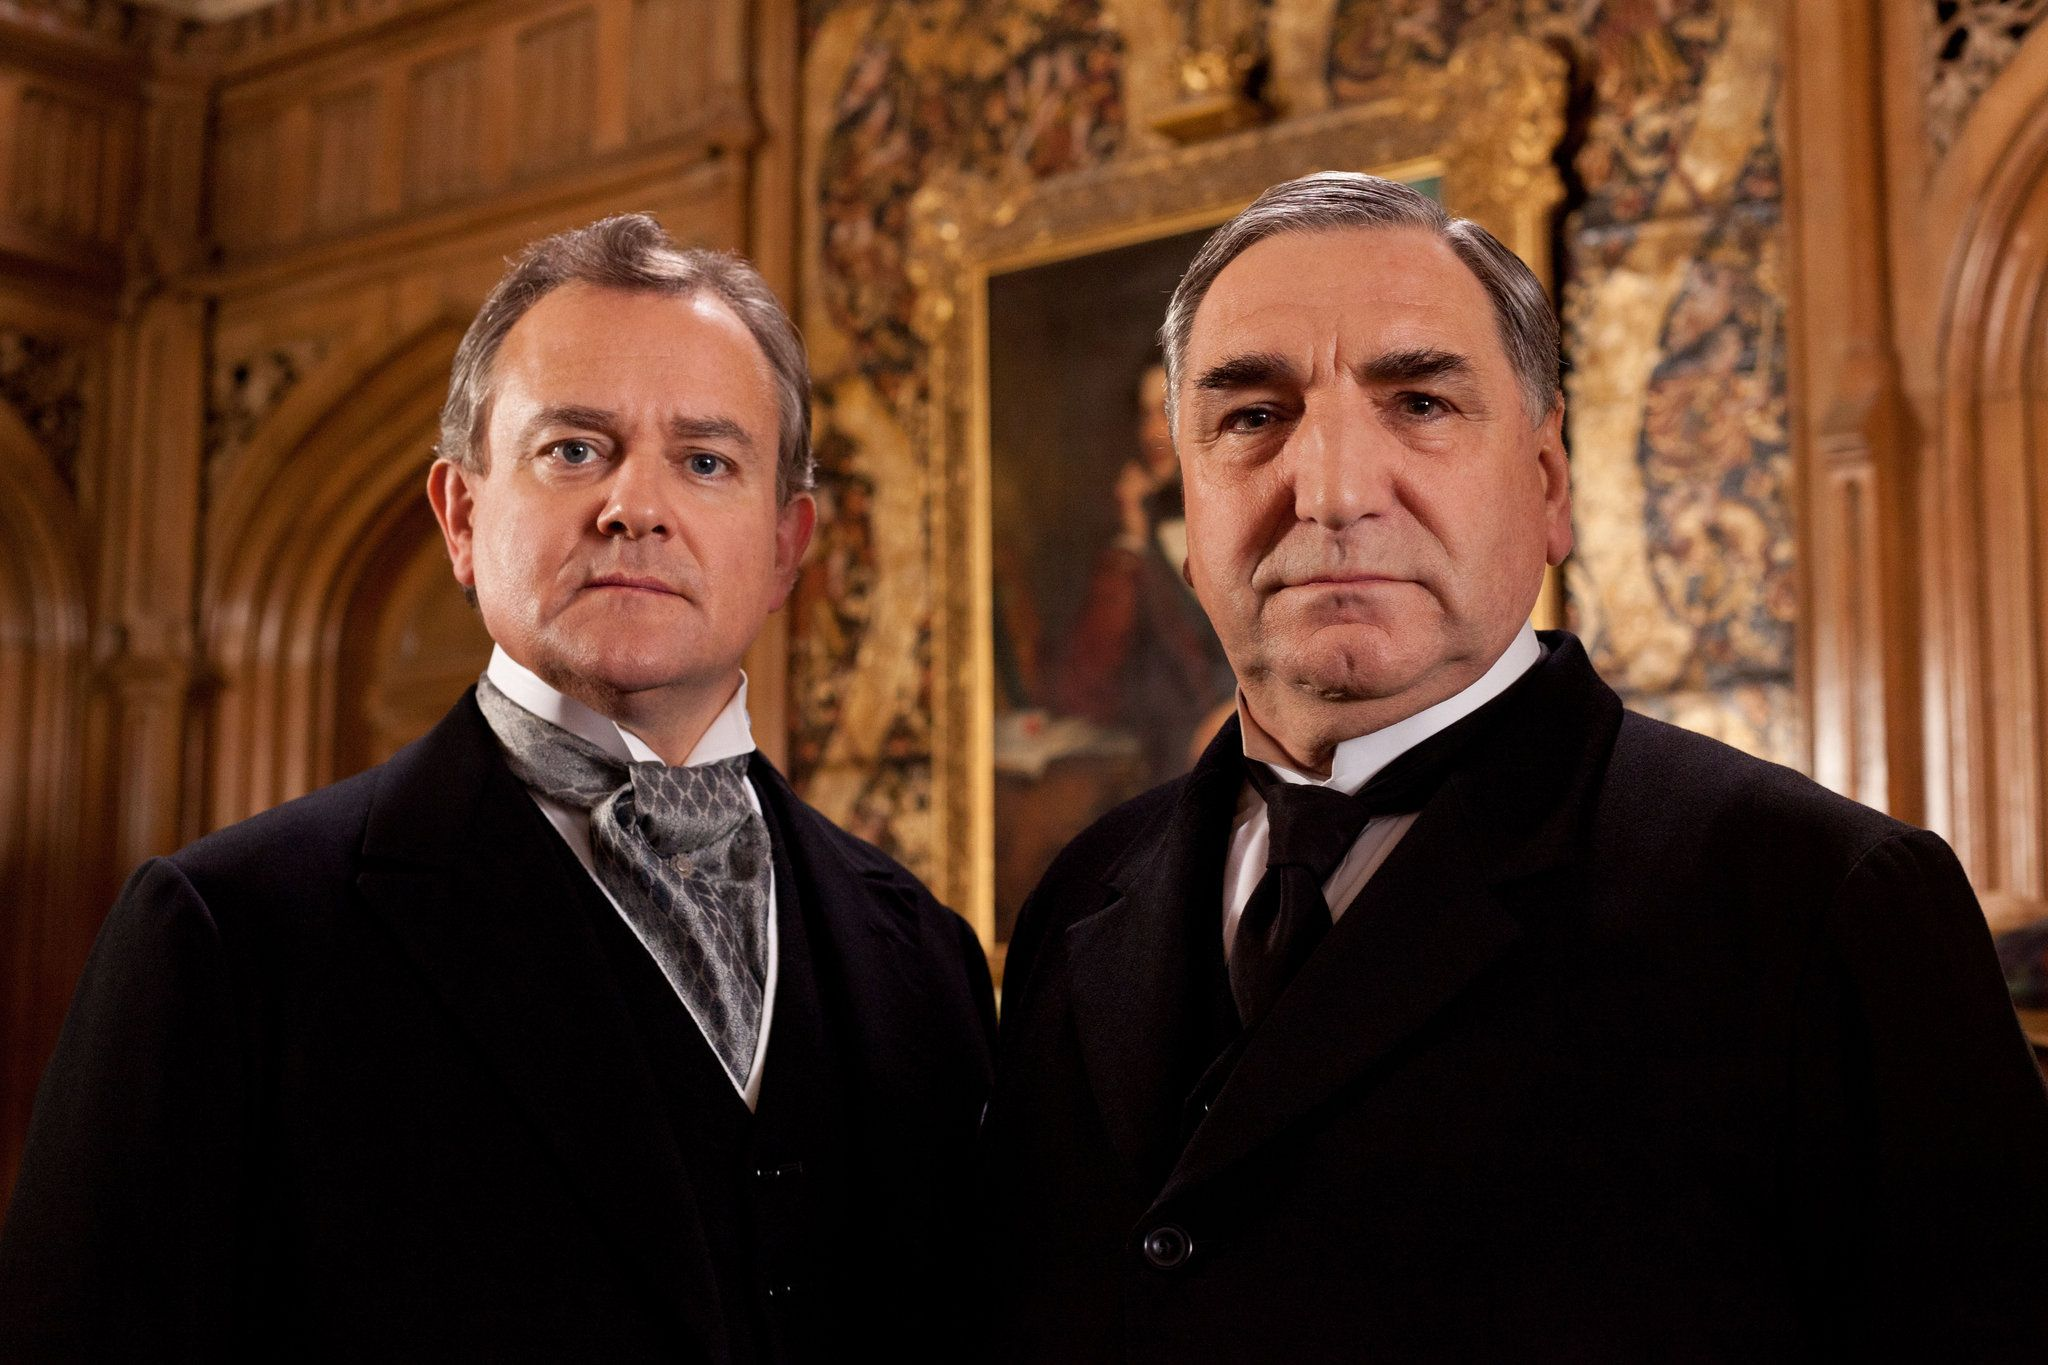 Lord Grantham (Hugh Bonneville) and Carson (Jim Carter)